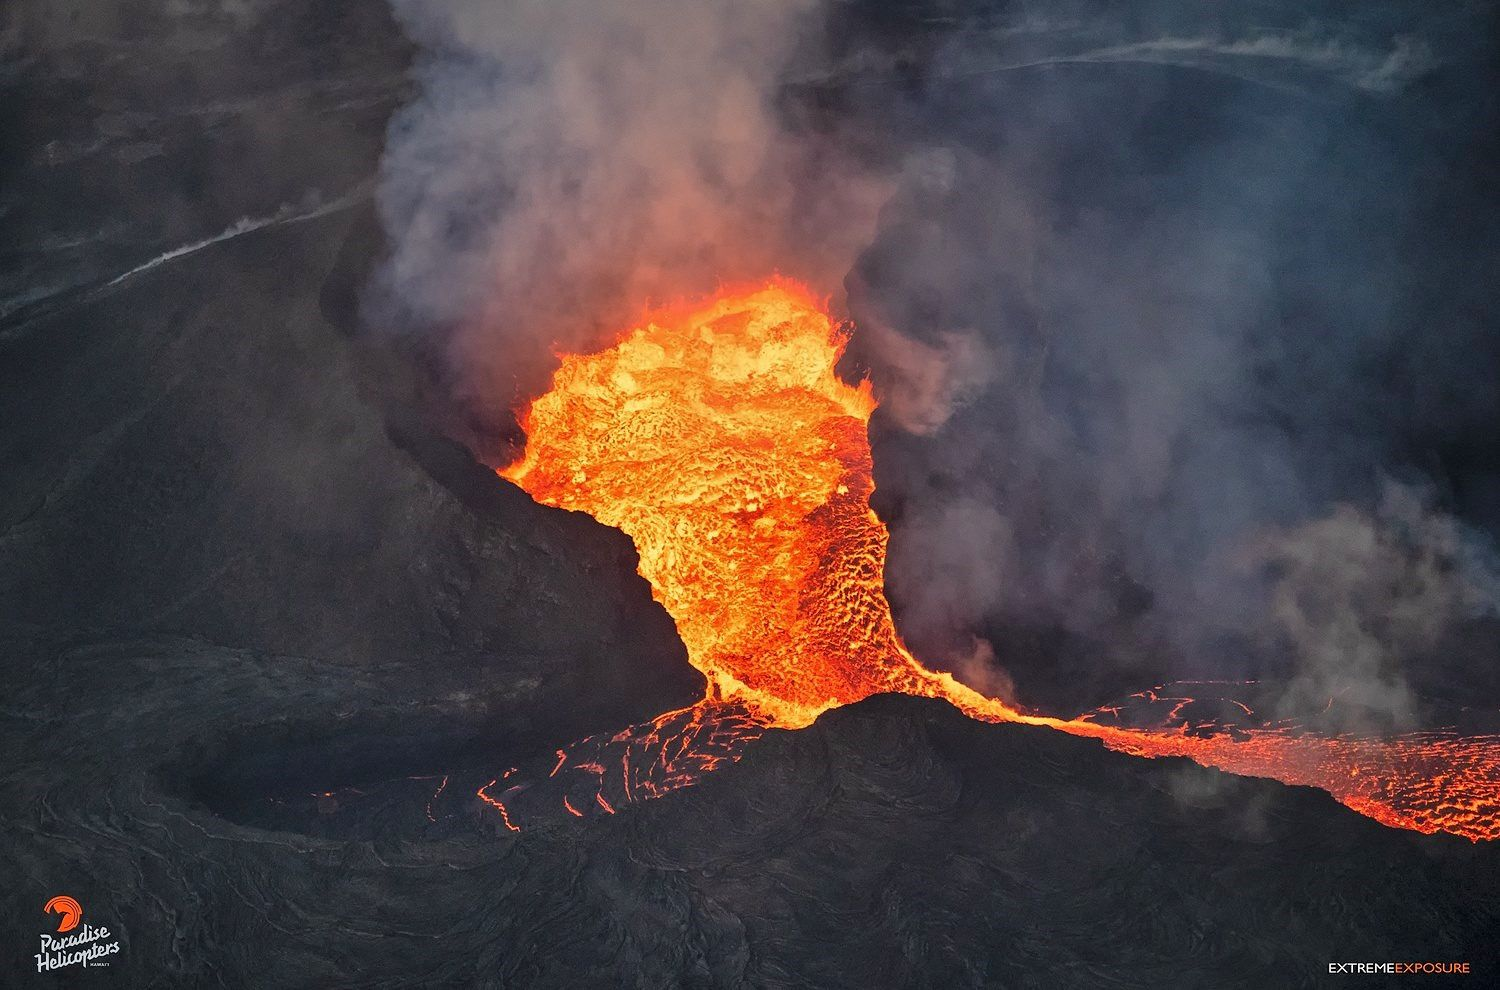 Kilauea East rift zone - the level of lava has dropped both inside the cone spatter and at the level of the flow - photo Bruce Omori